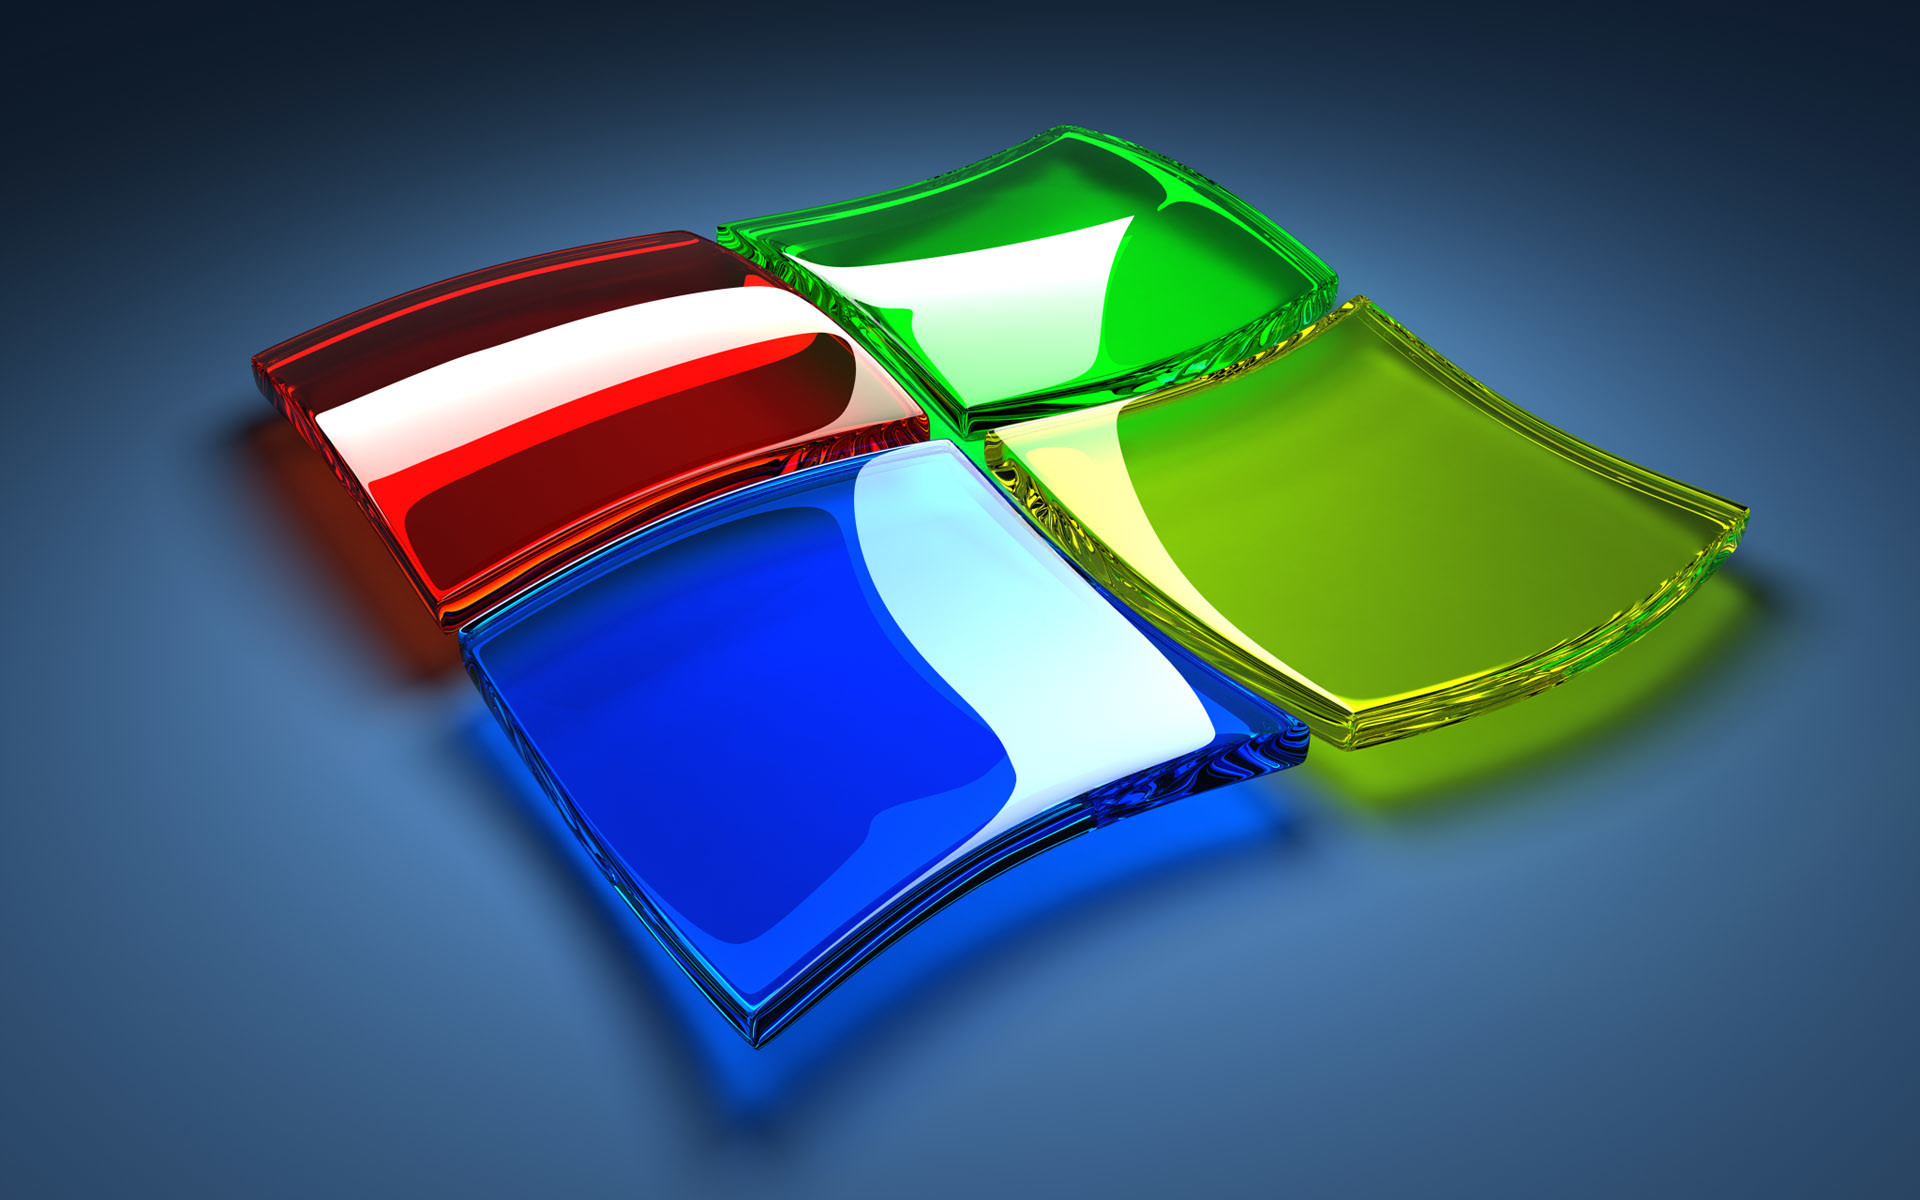 moving wallpaper windows 7 (50+ images)